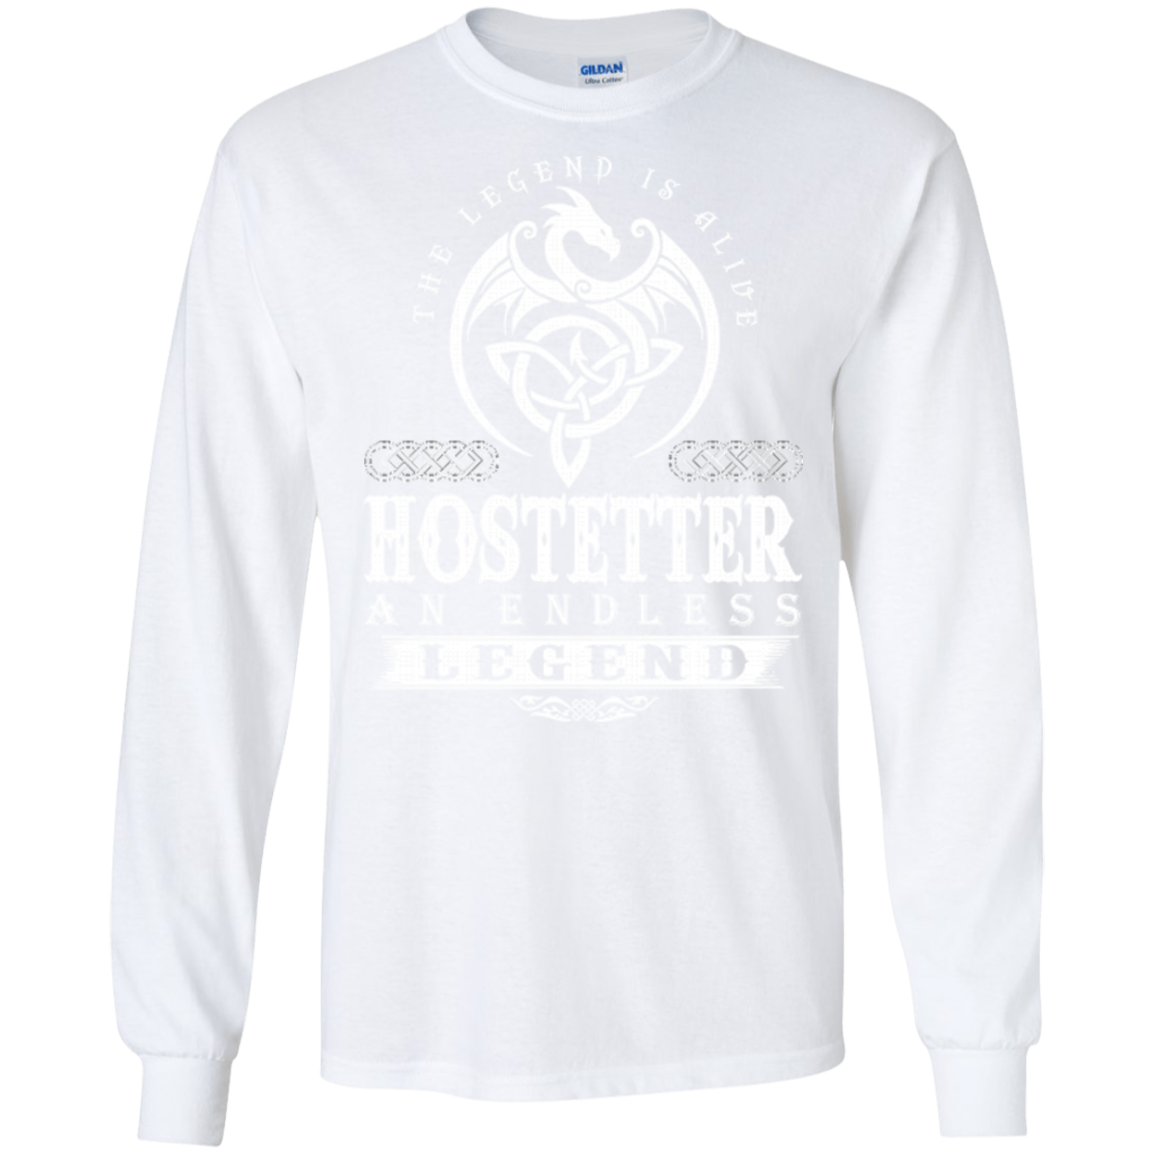 Name Shirt The Legend Is Alive Hostetter An Endless Hoodies Sweatshirts